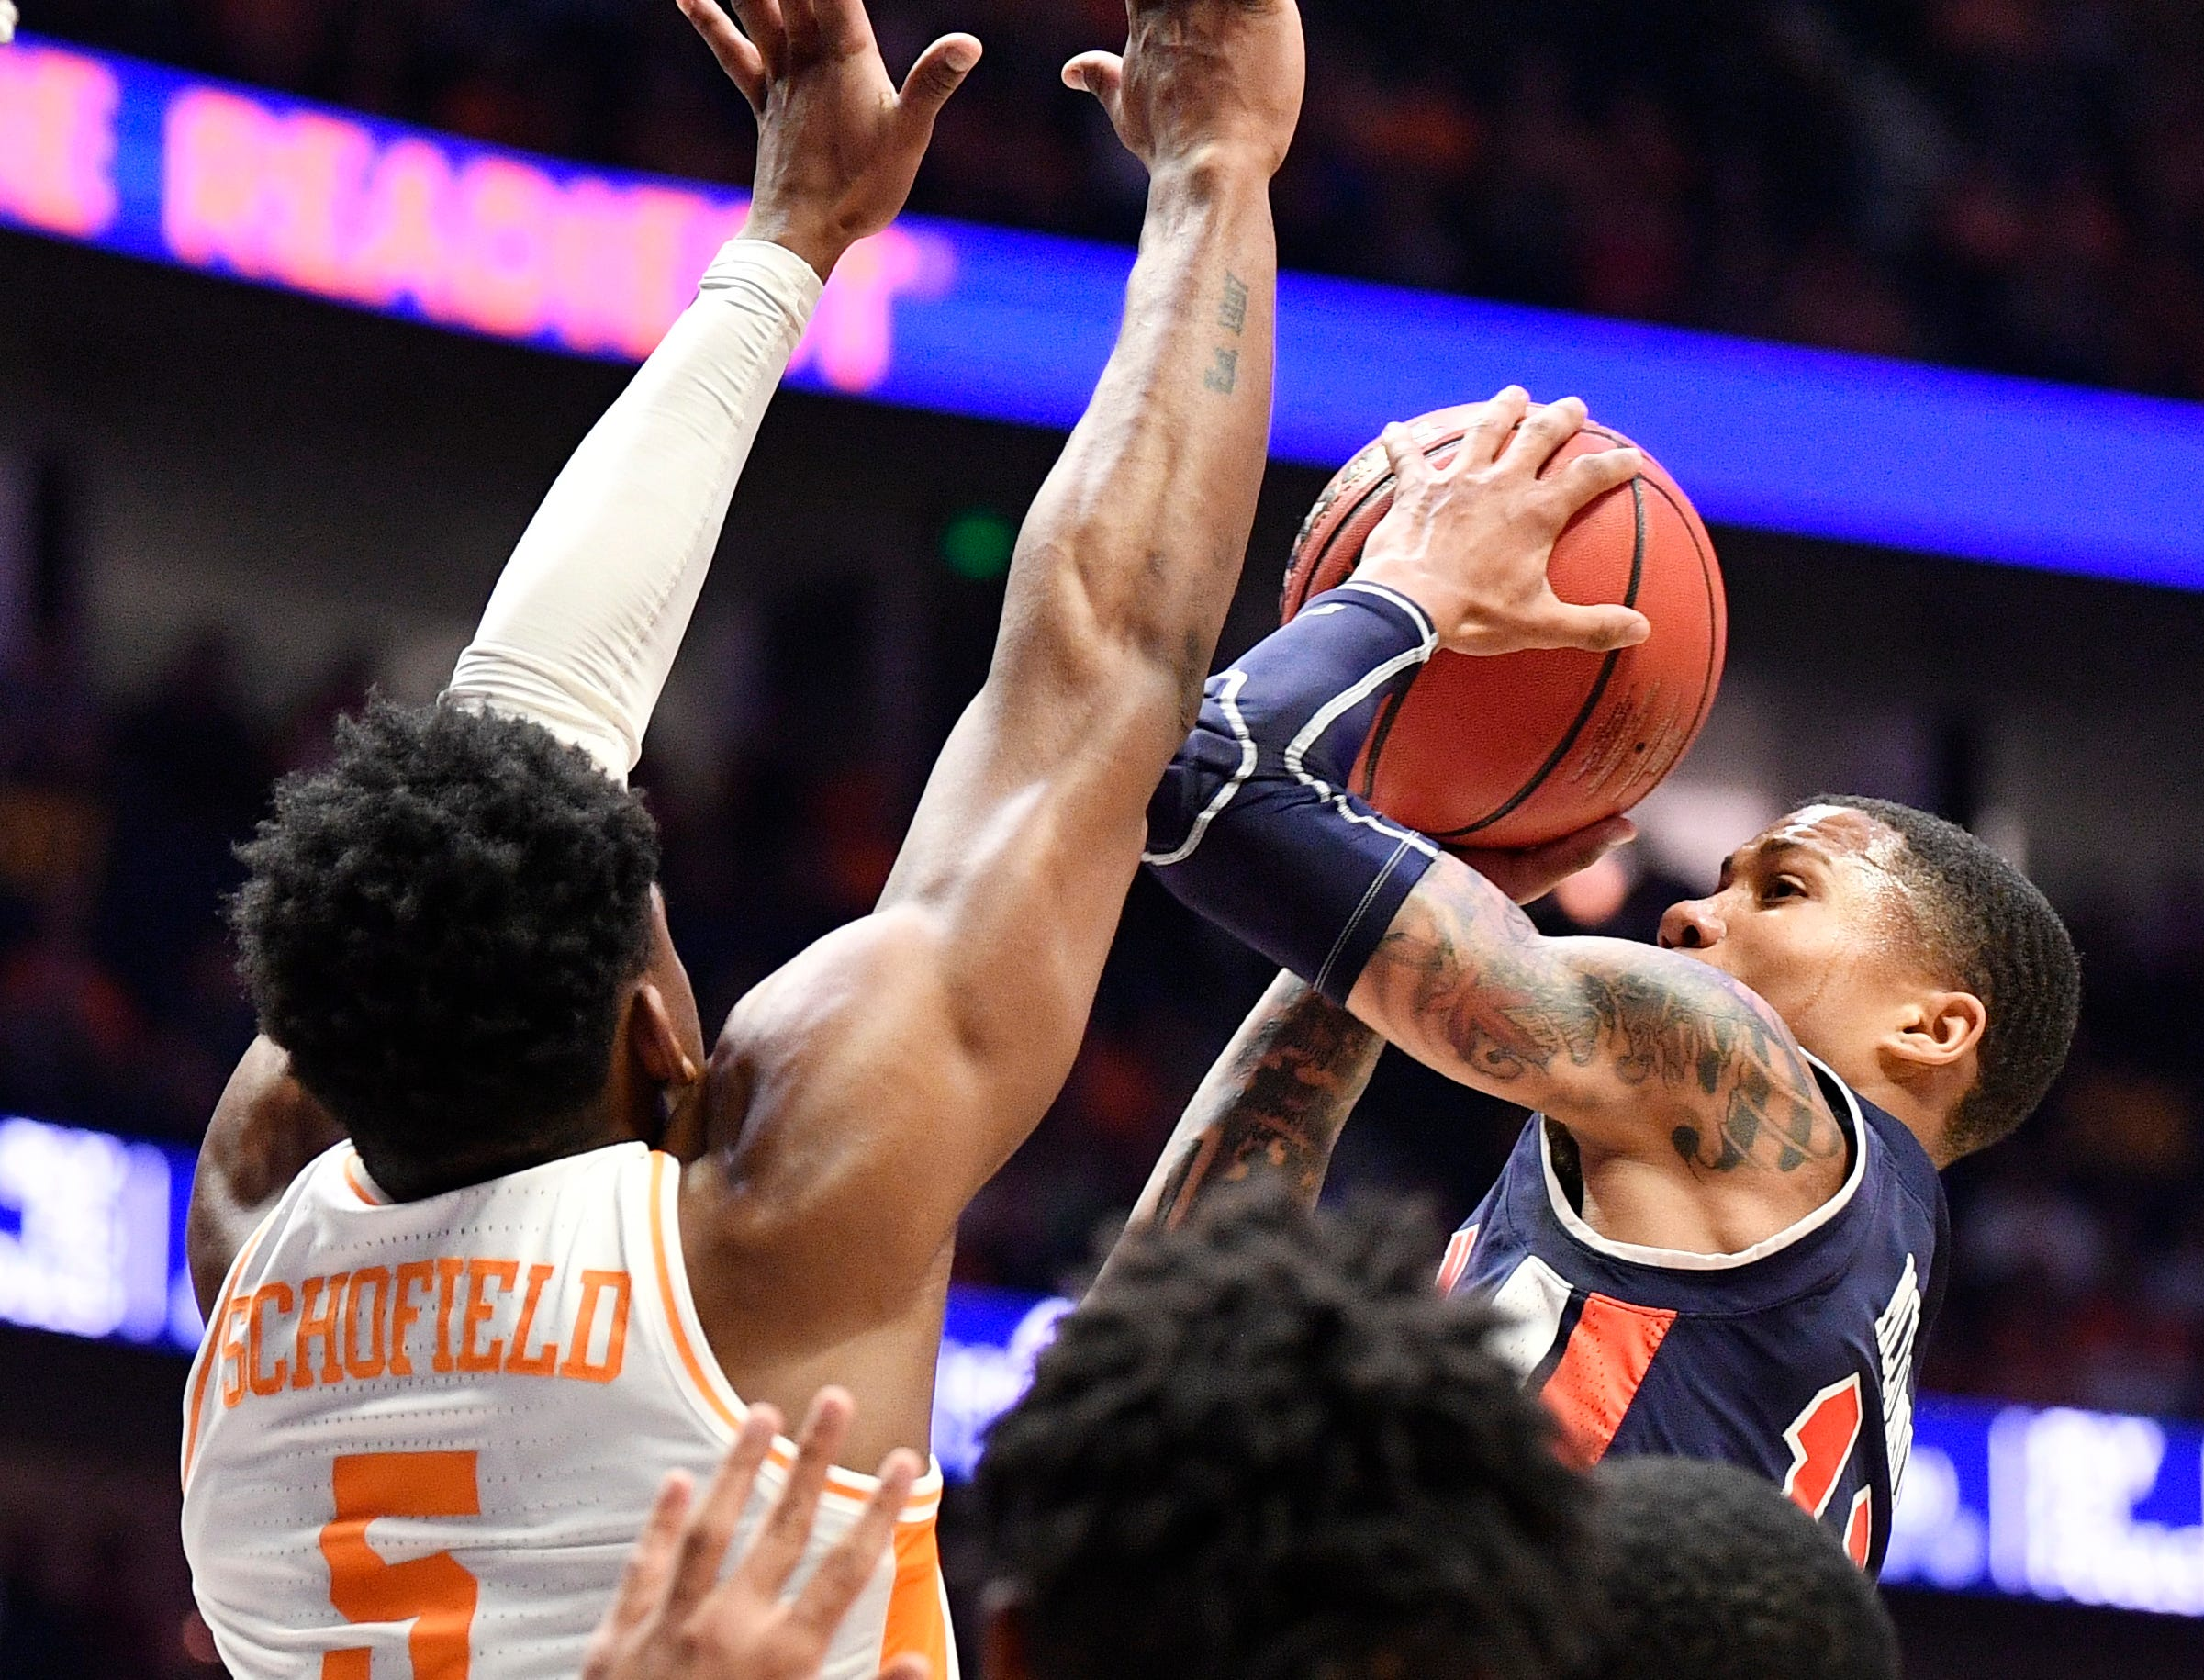 Auburn guard J'Von McCormick (12) goes up for a shot defended by Tennessee guard Admiral Schofield (5) during the first half of the SEC Men's Basketball Tournament championship game at Bridgestone Arena in Nashville, Tenn., Sunday, March 17, 2019.